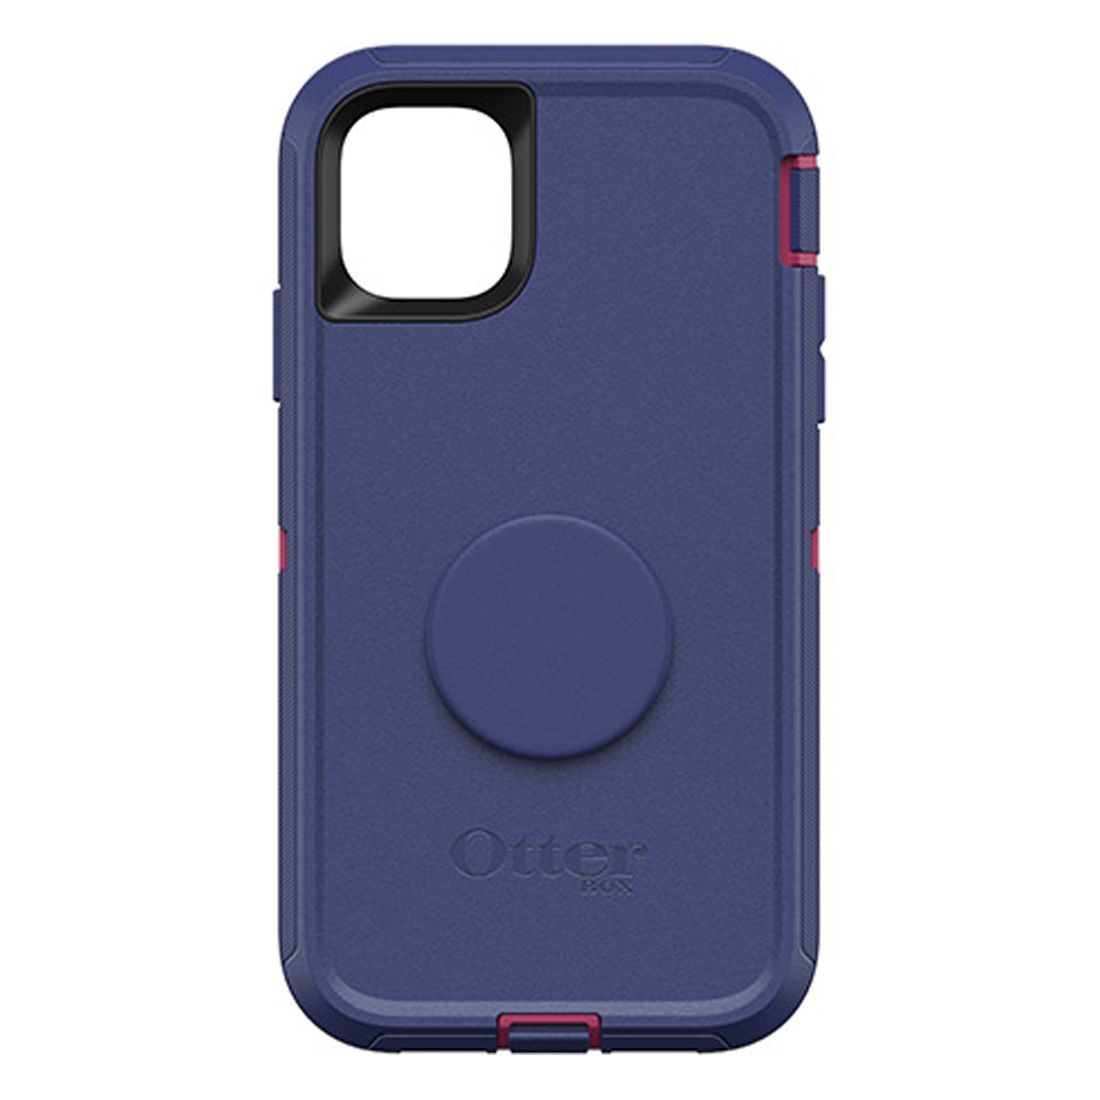 Otterbox Otter + Pop Defender Case for Apple iPhone 11 - Grape Jelly Purple